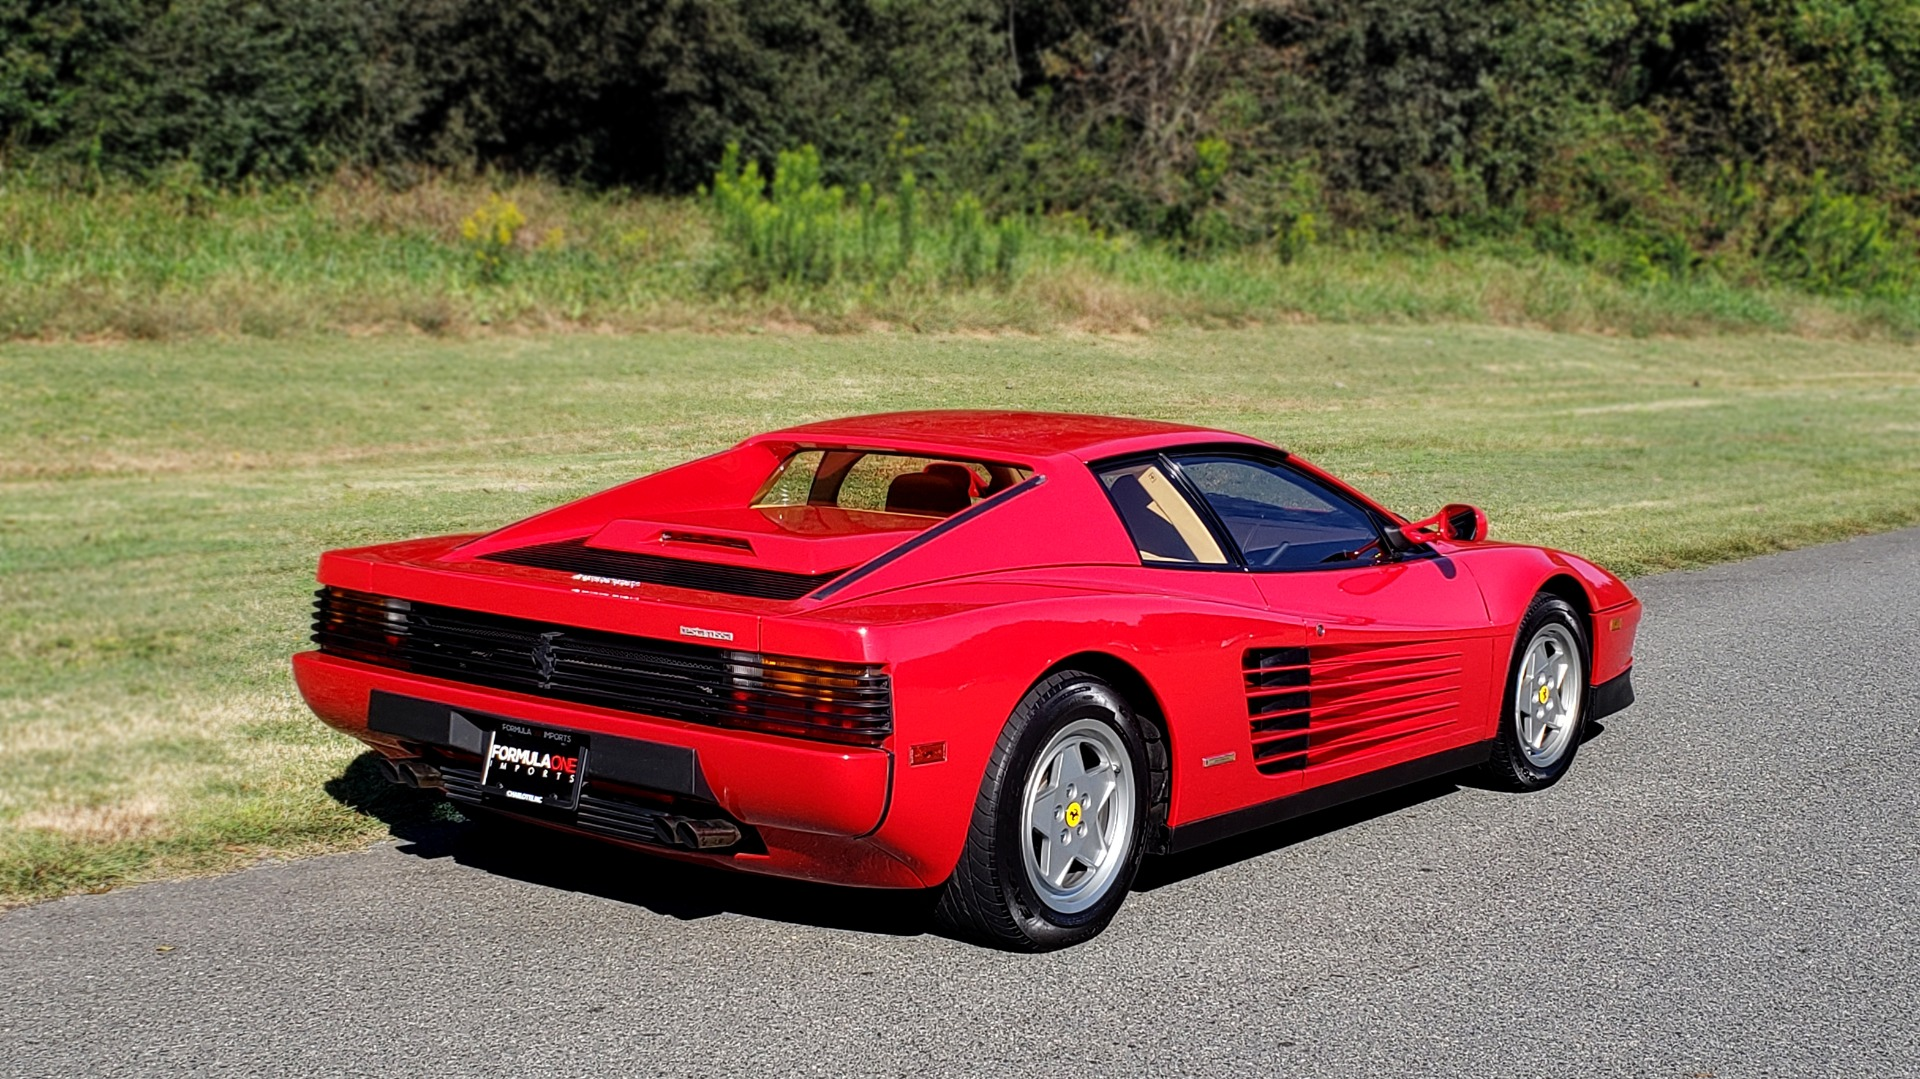 Used 1988 Ferrari TESTAROSSA COUPE / 4.9L FLAT-12 / 5-SPEED MANUAL / LOW MILES SUPER CLEAN for sale $128,999 at Formula Imports in Charlotte NC 28227 8